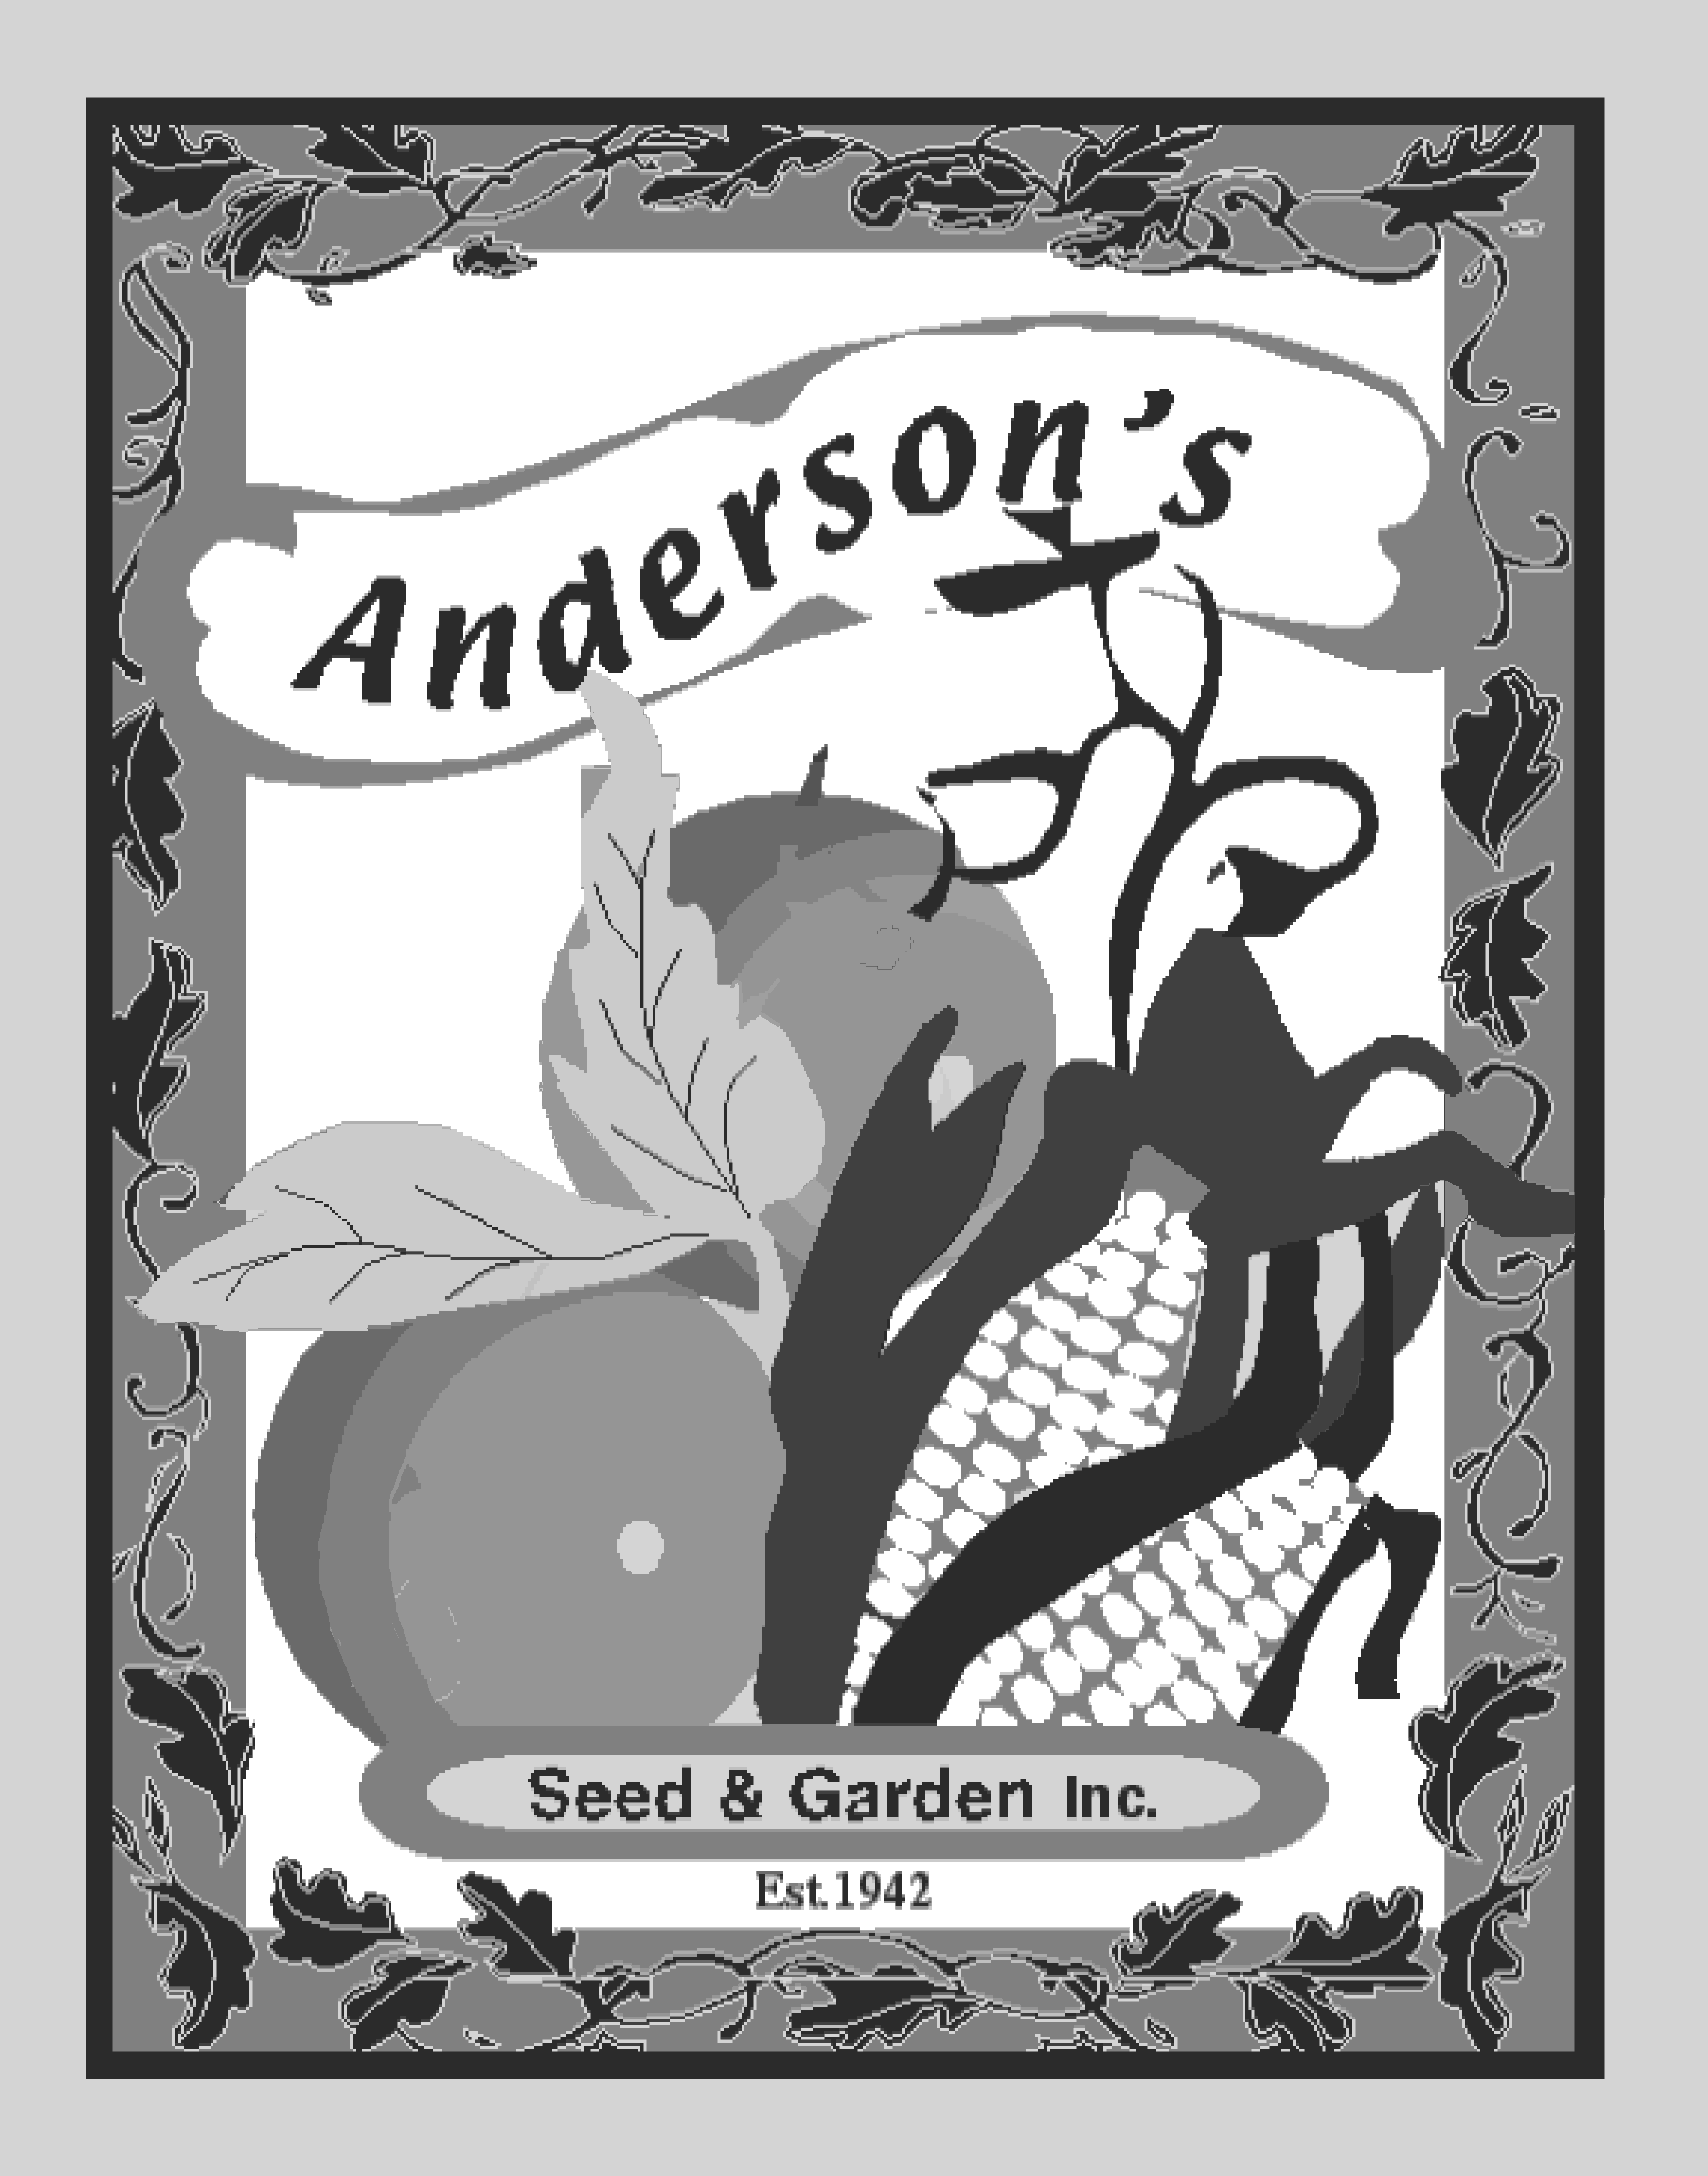 Green Arrow Heirloom Pea Seed 1 lb.